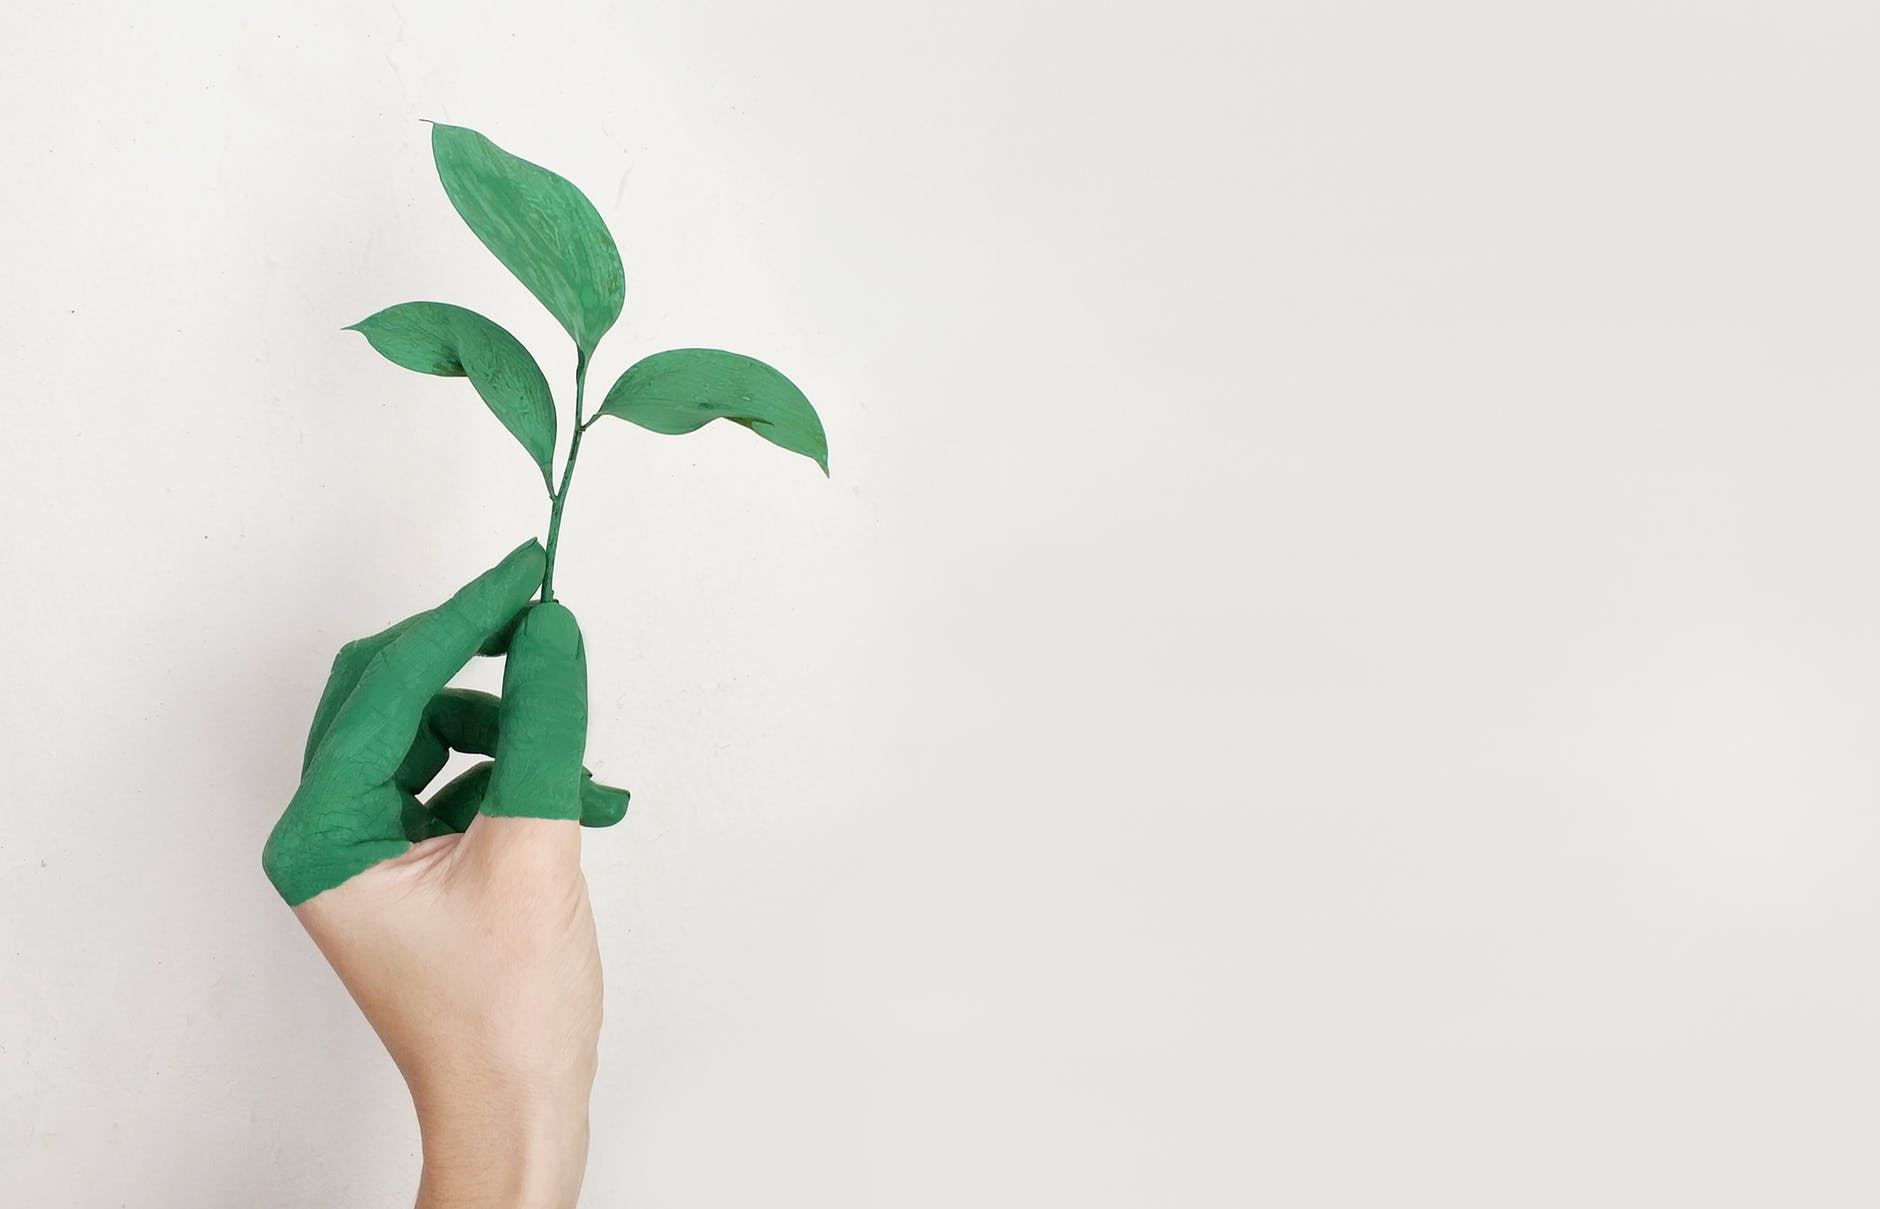 Green Fingers on Hand Holding Leaf